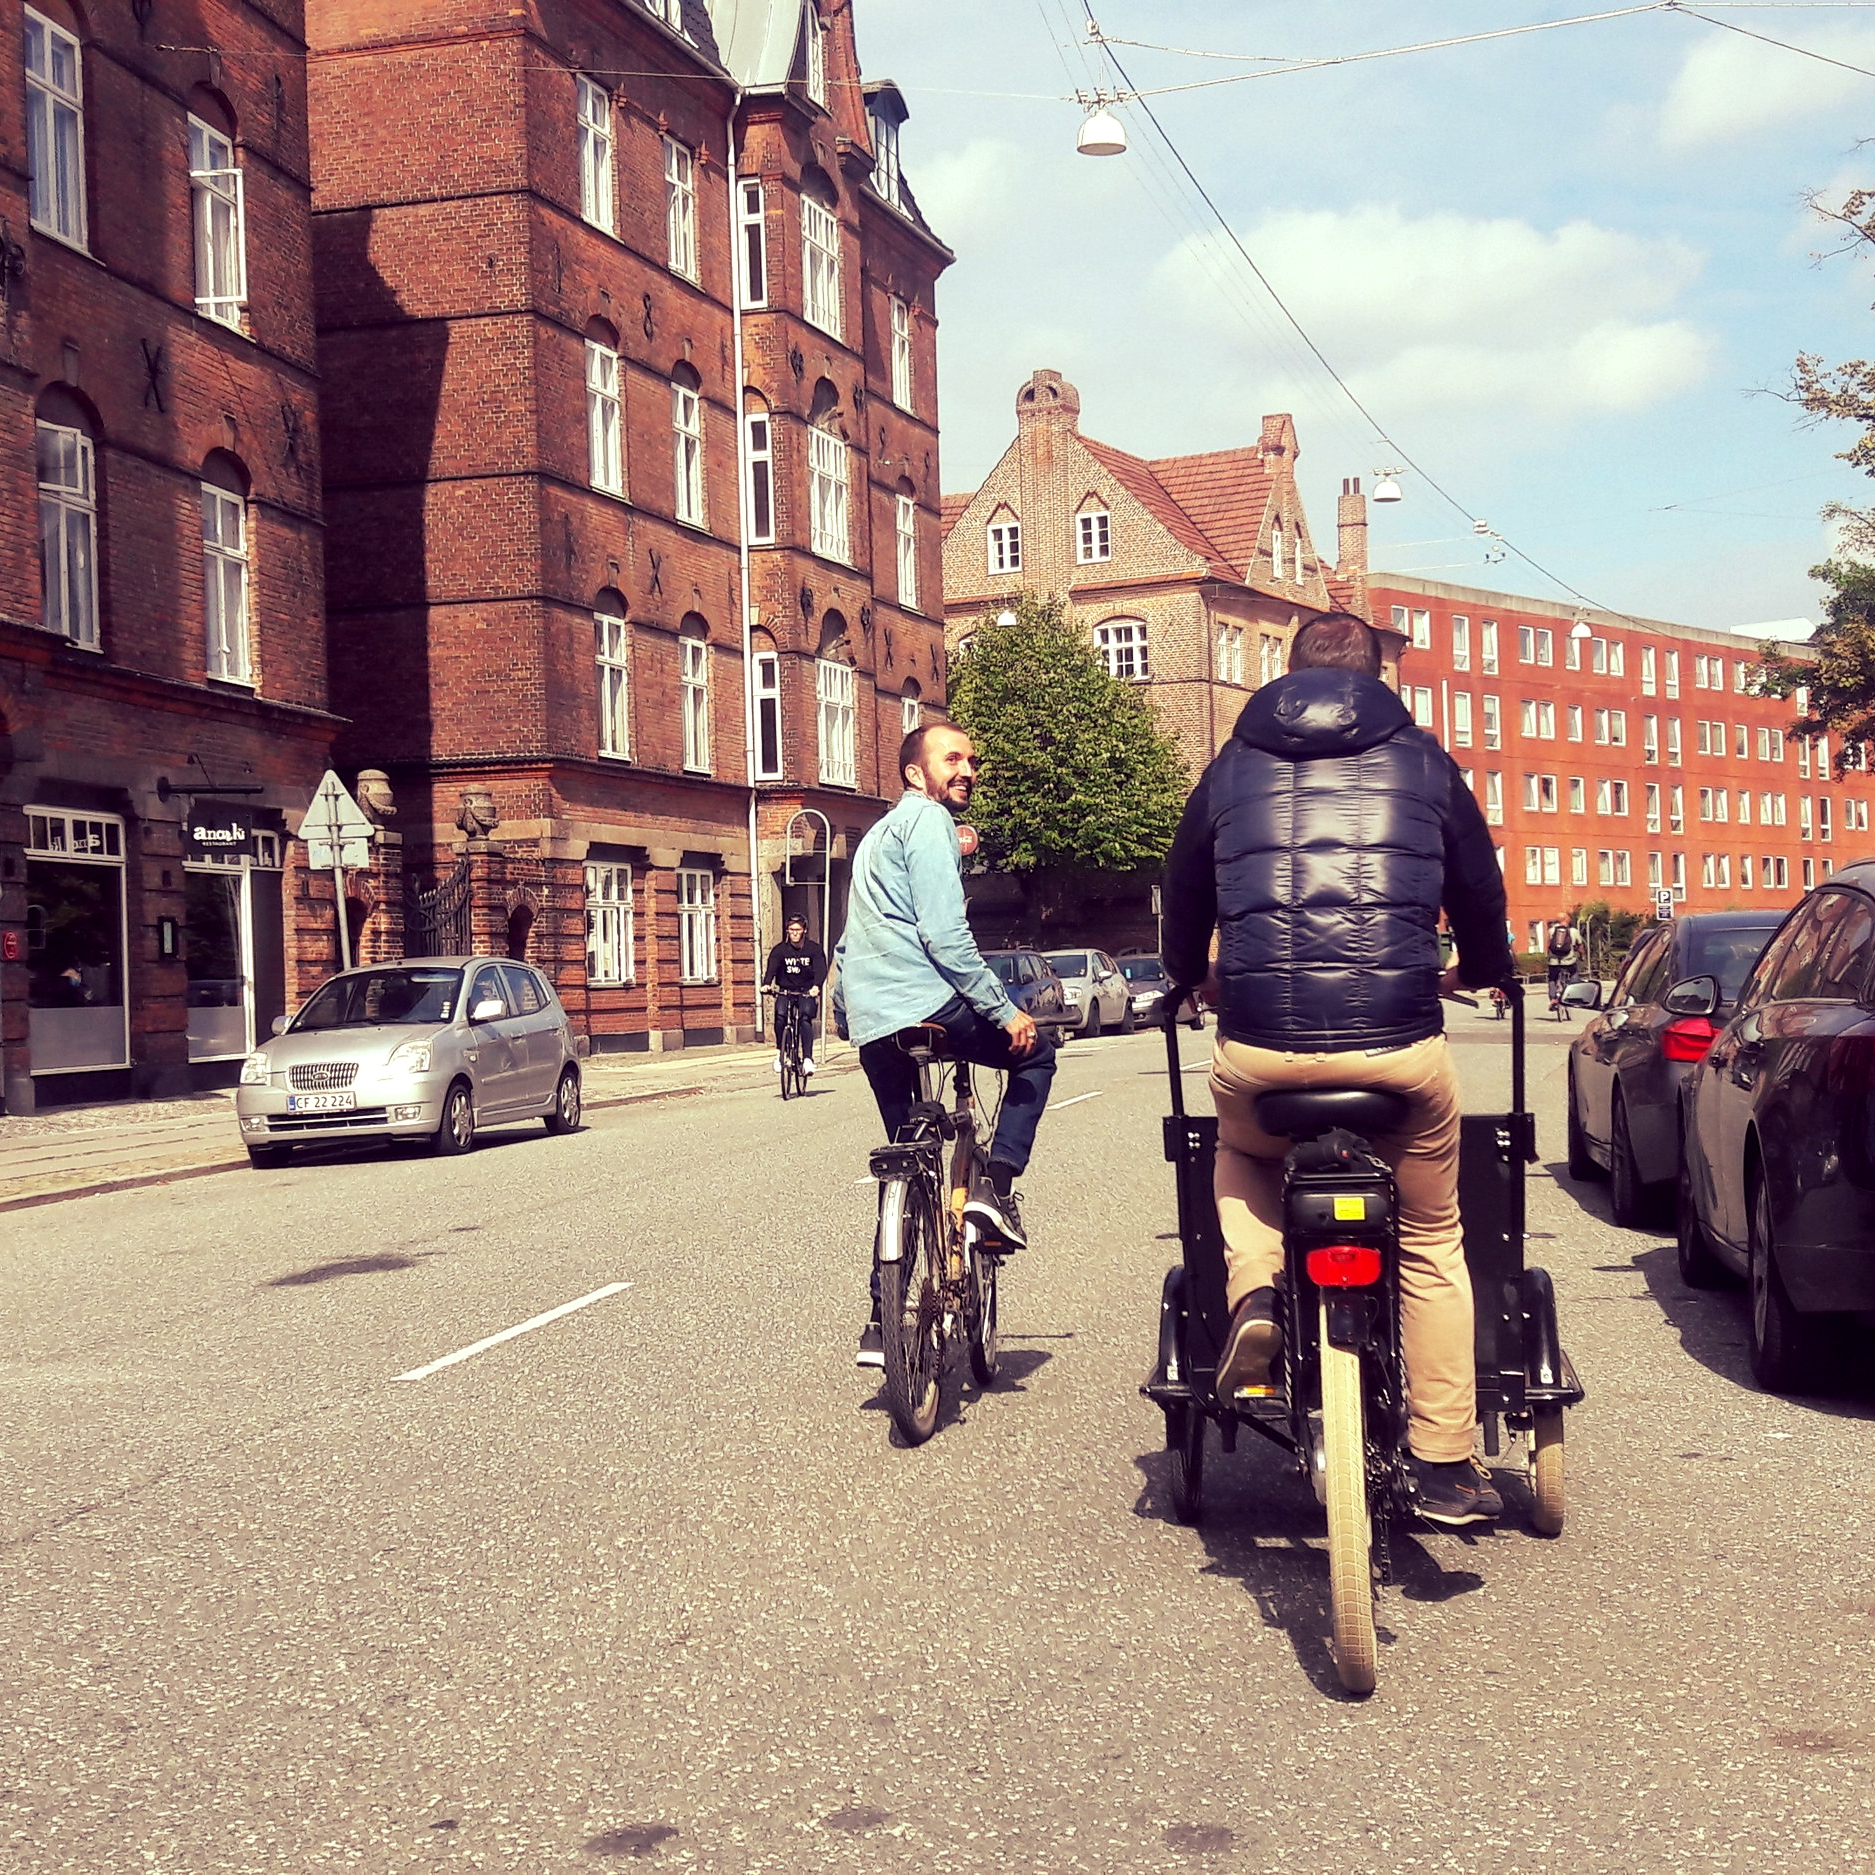 Getting to explore some of the everyday streets of Copenhagen